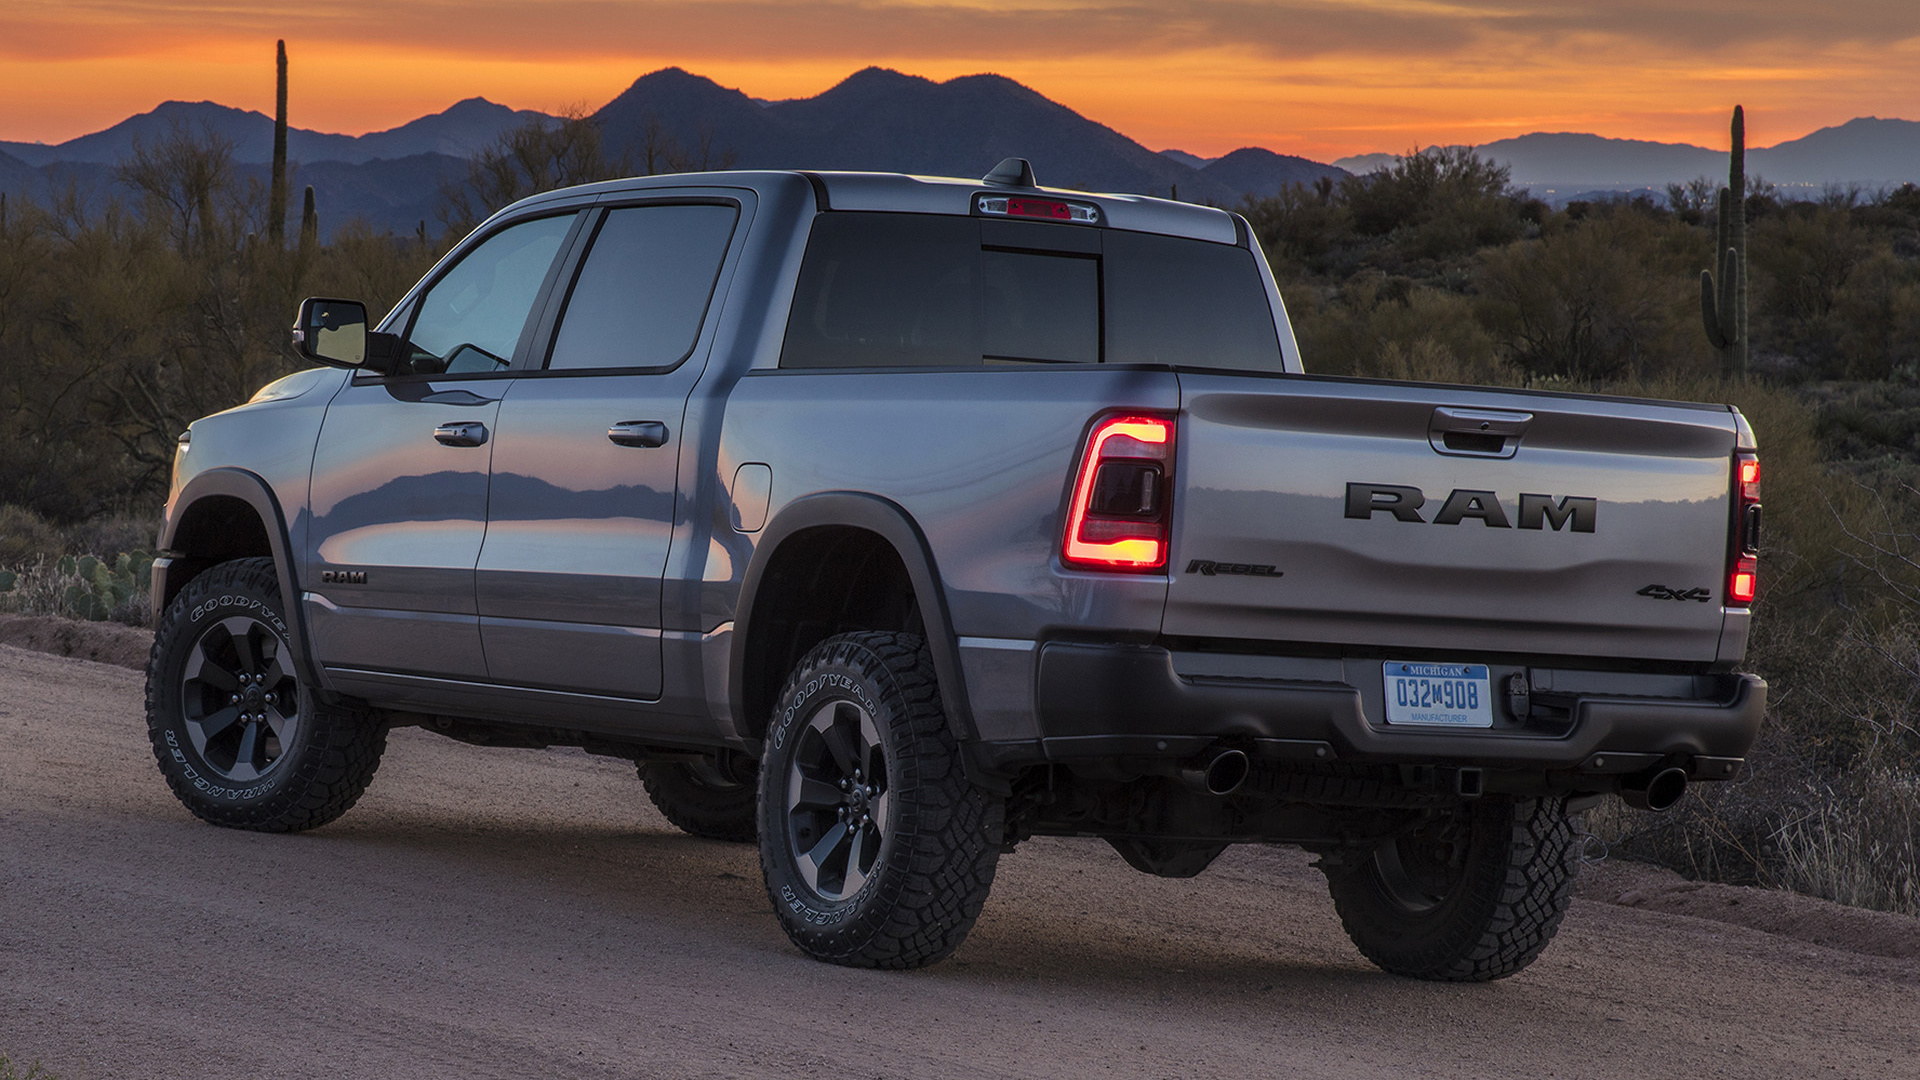 Ram 1500 Rebel Crew Cab [Short] (2019) Wallpapers and HD ...